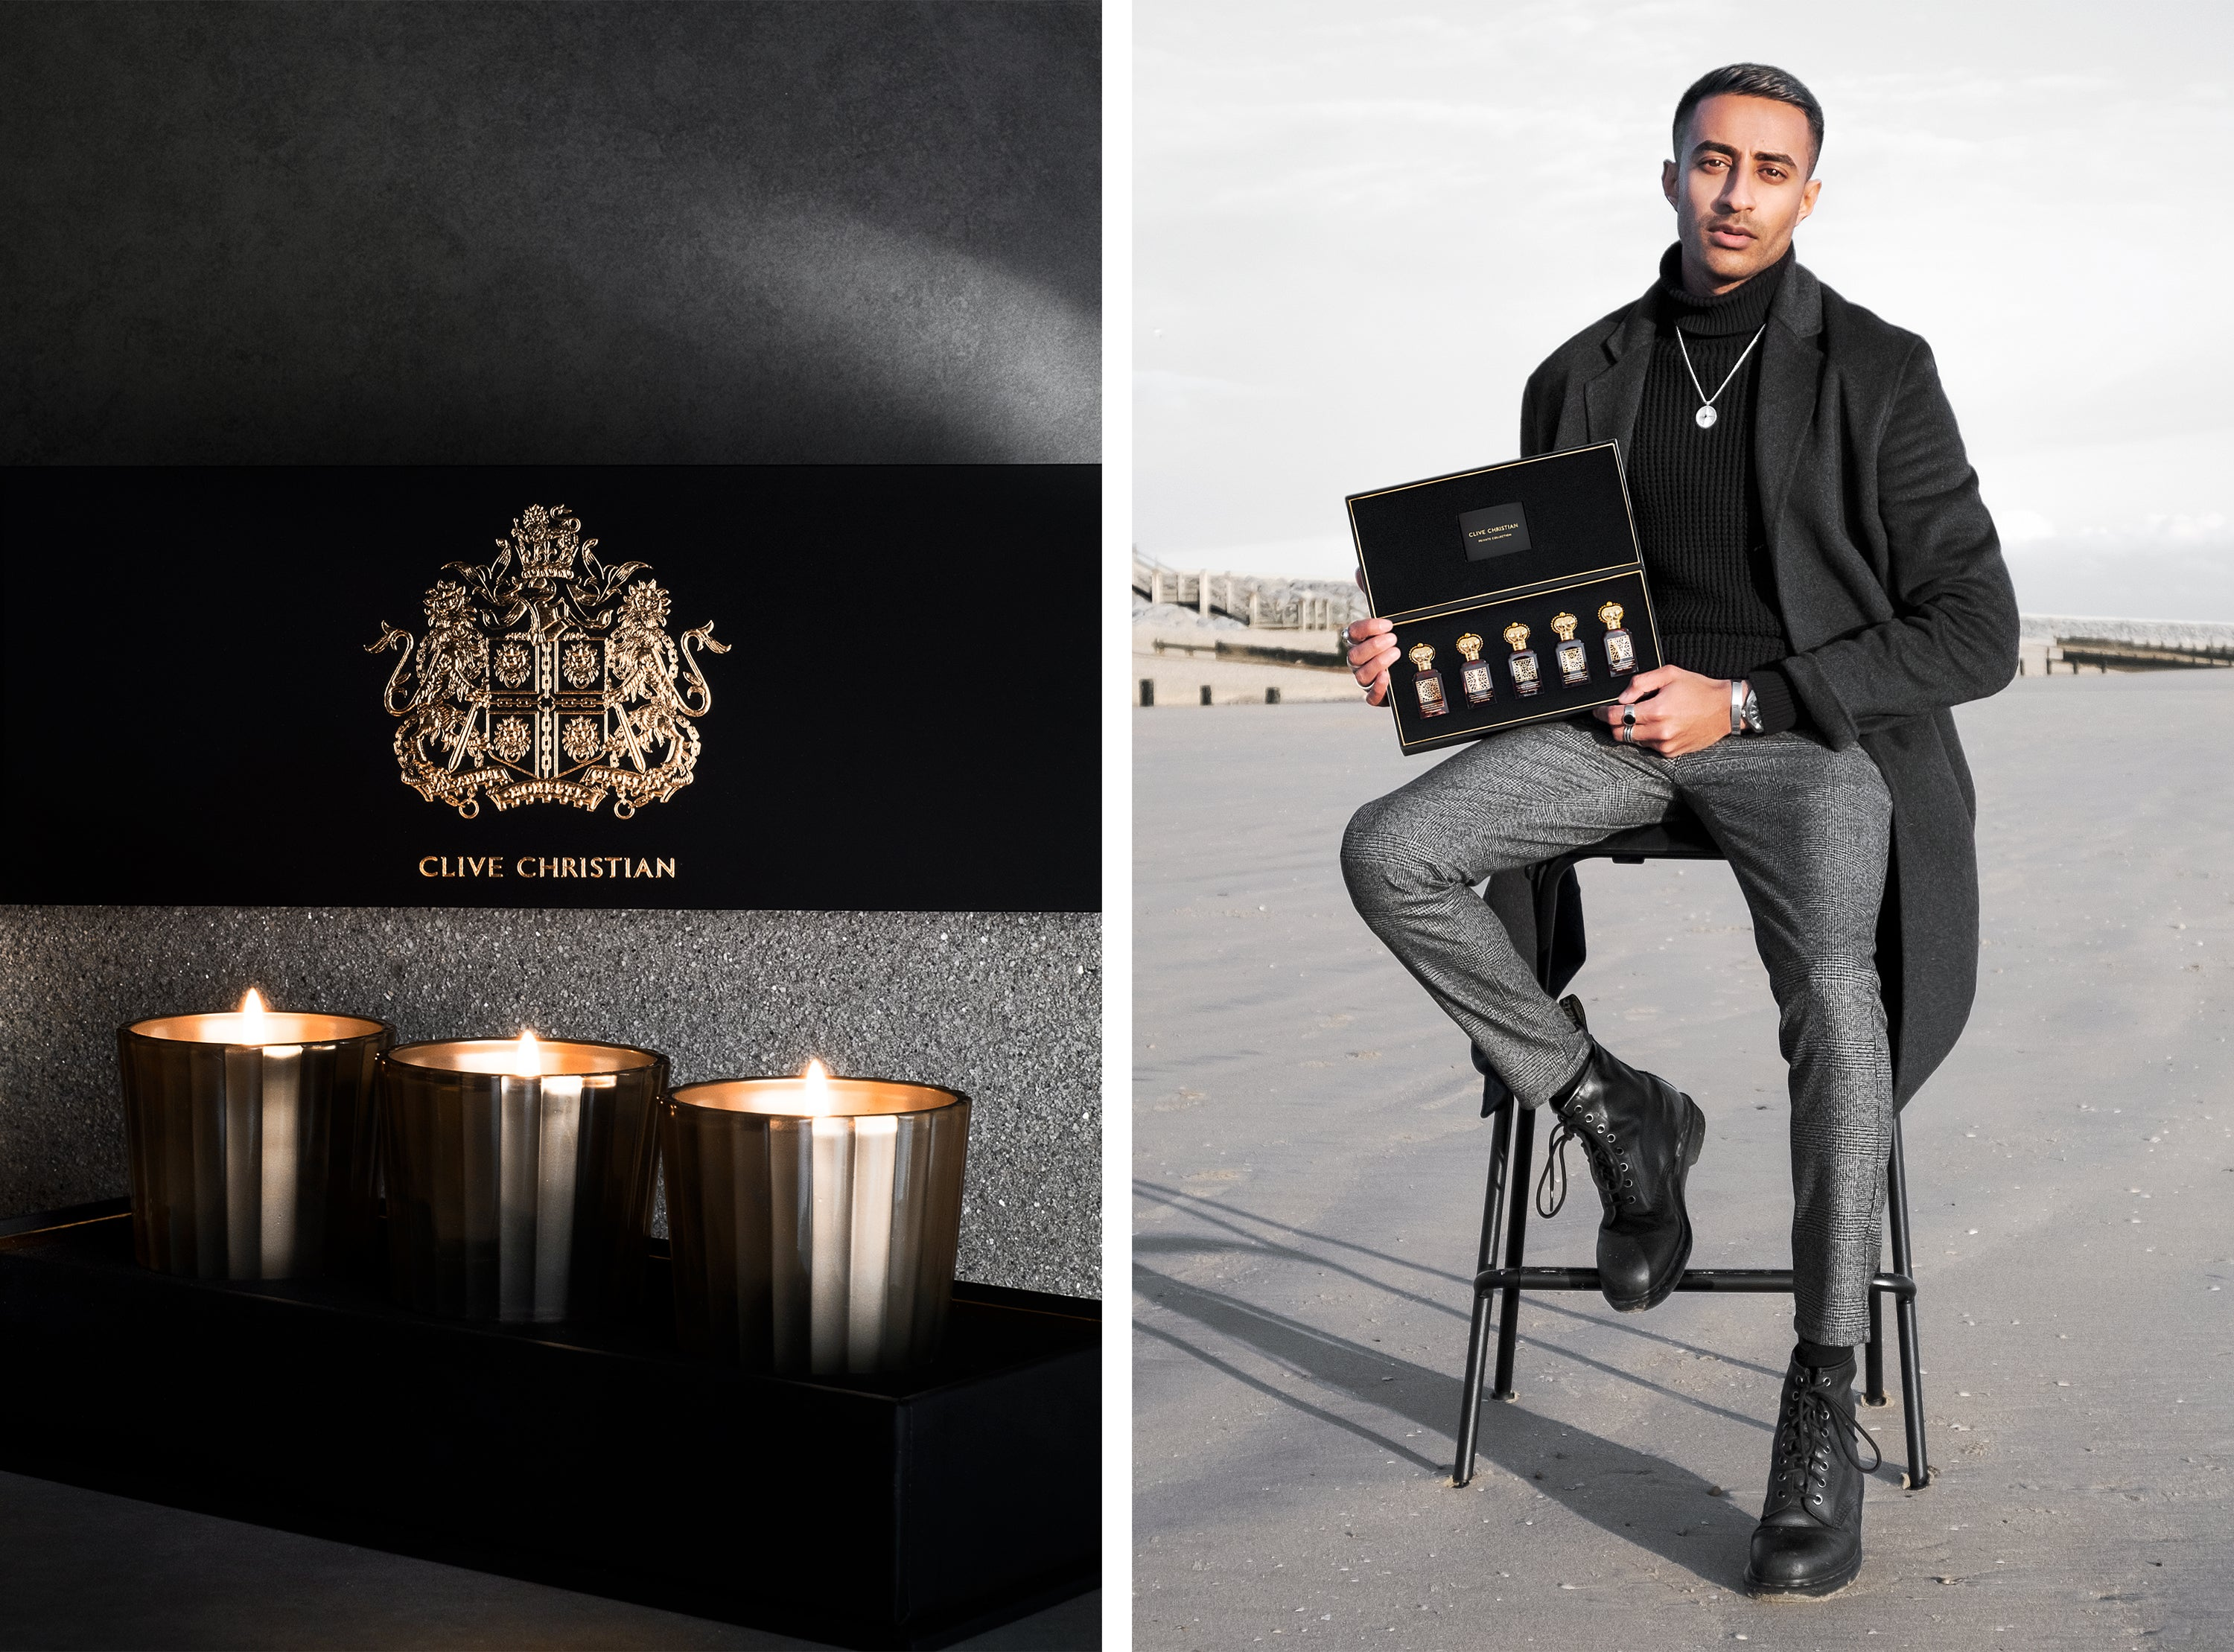 Rahul Patel Clive Christian Perfume Private Collection Set and Candle Set